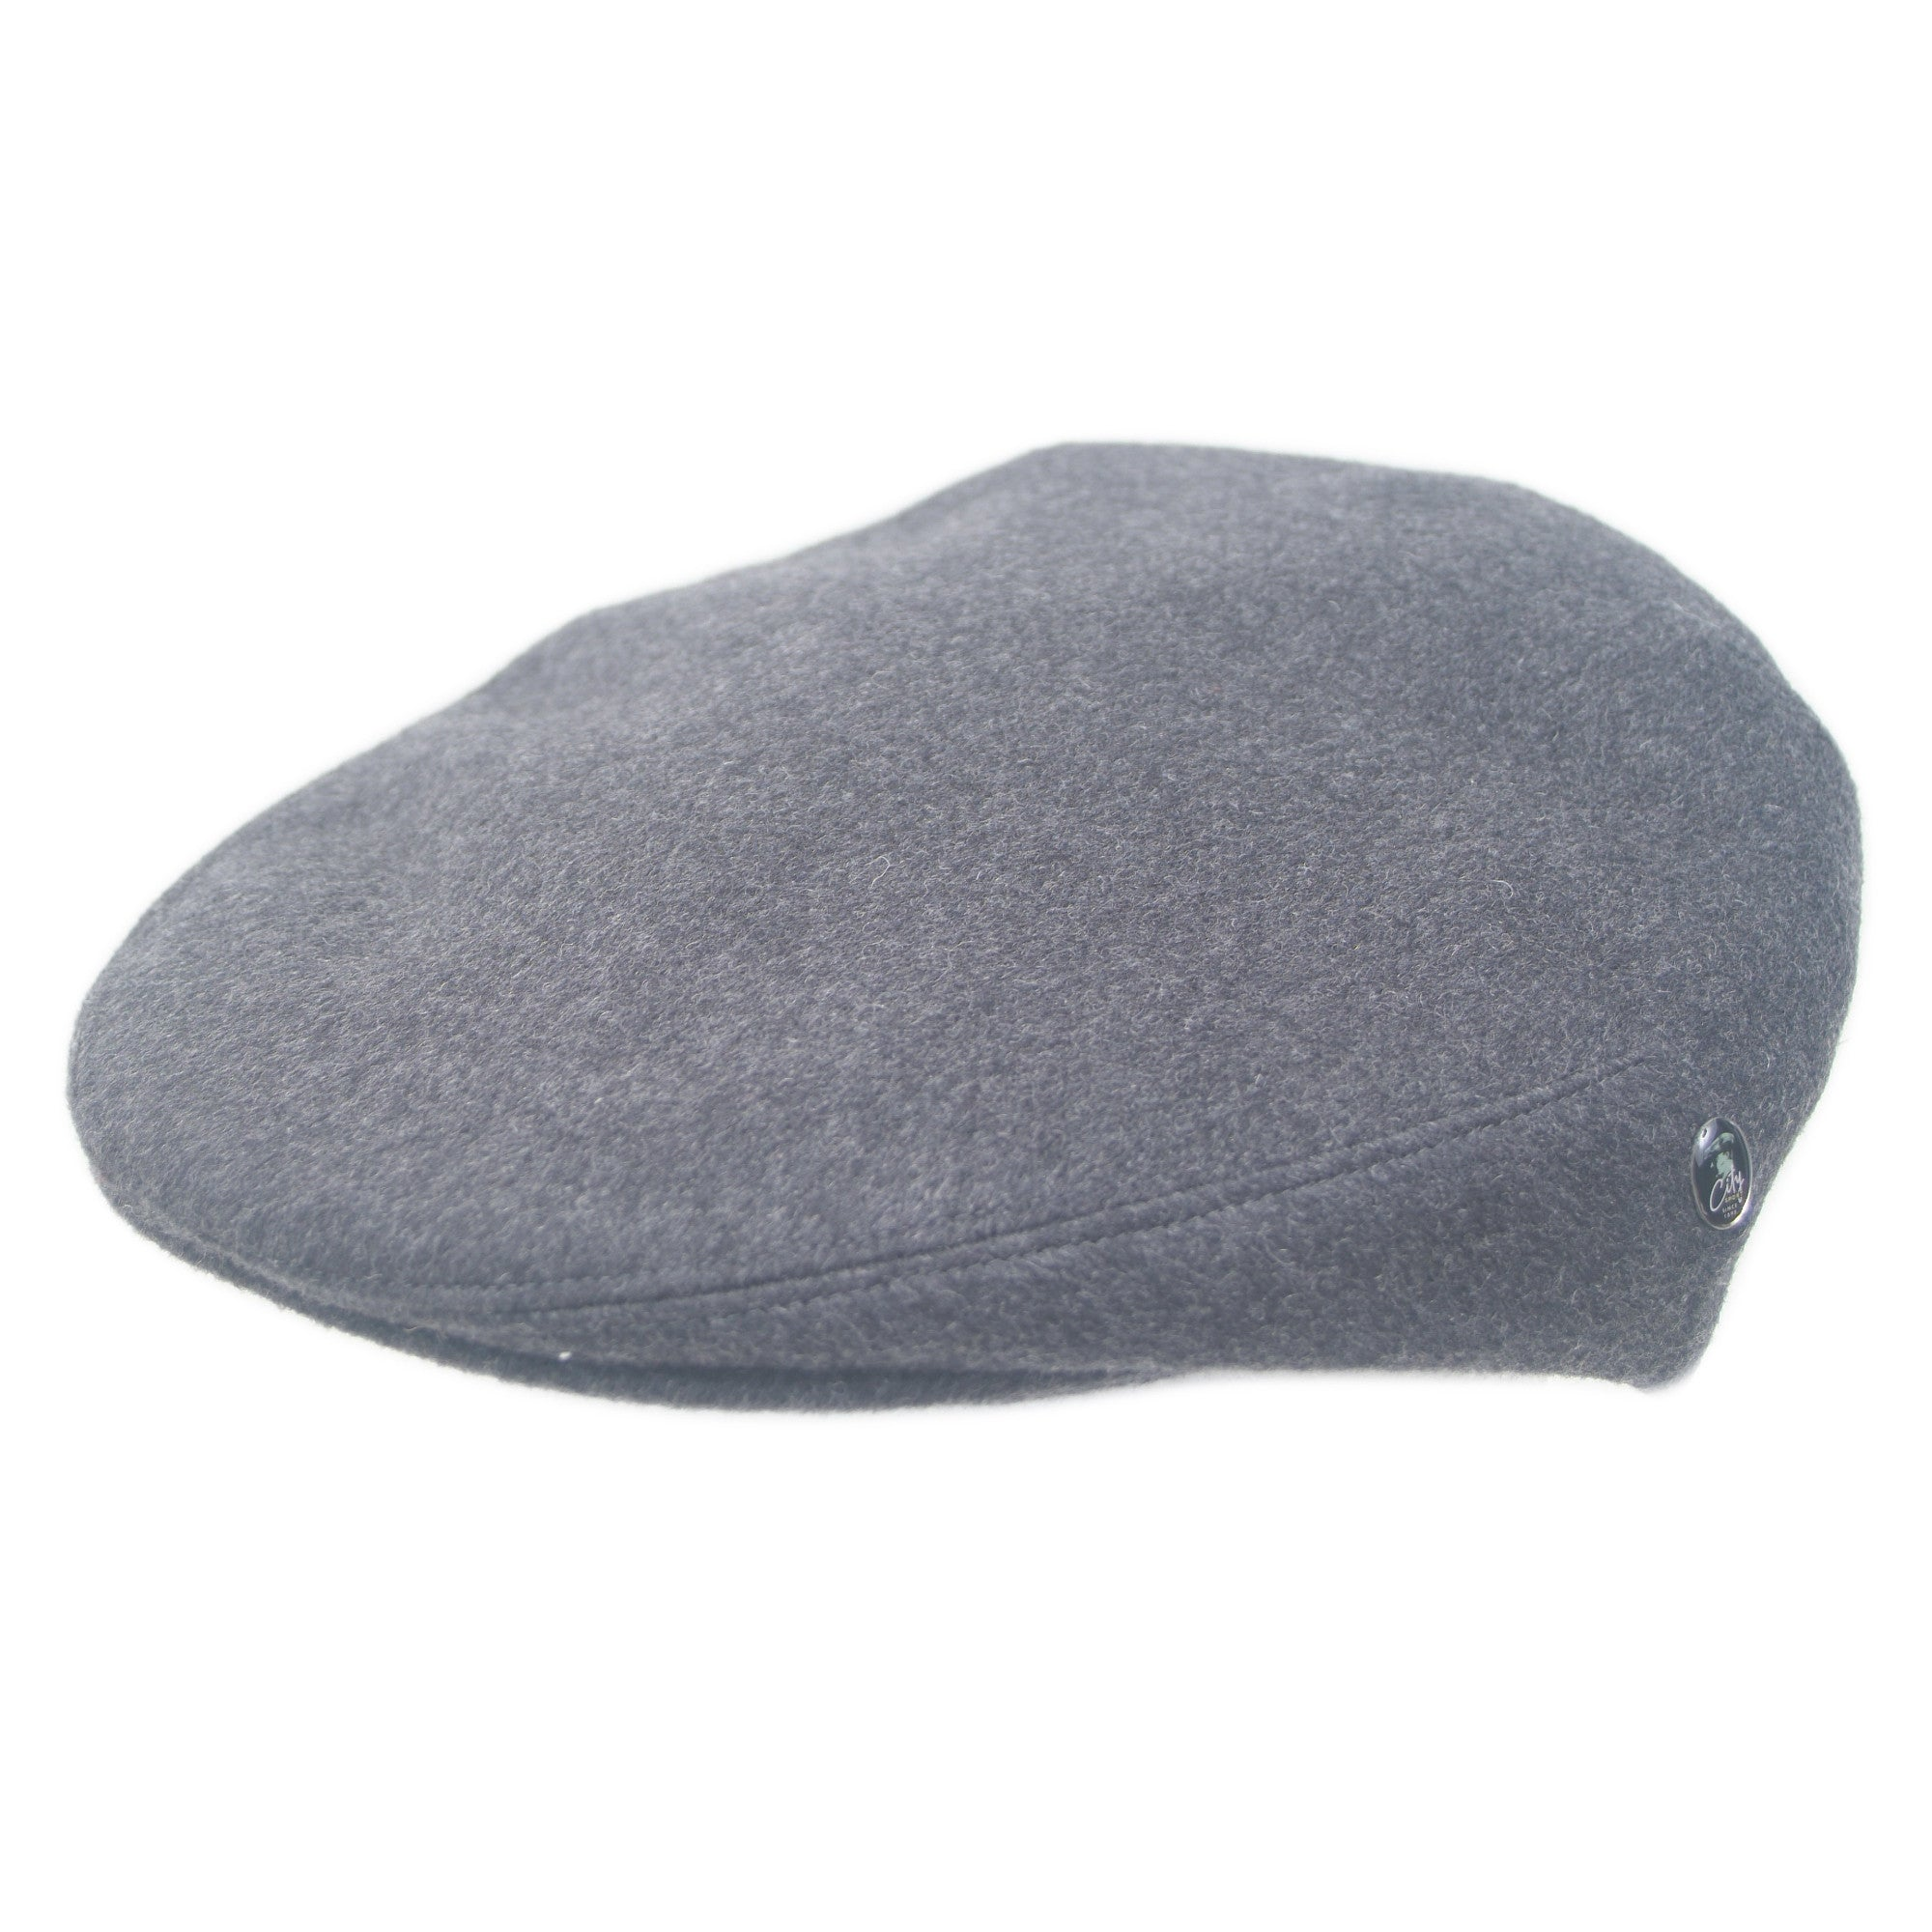 Charcoal Grey Mens Flat Cap | Pure Cashmere | by City Sport | buy now at The Cashmere Choice London